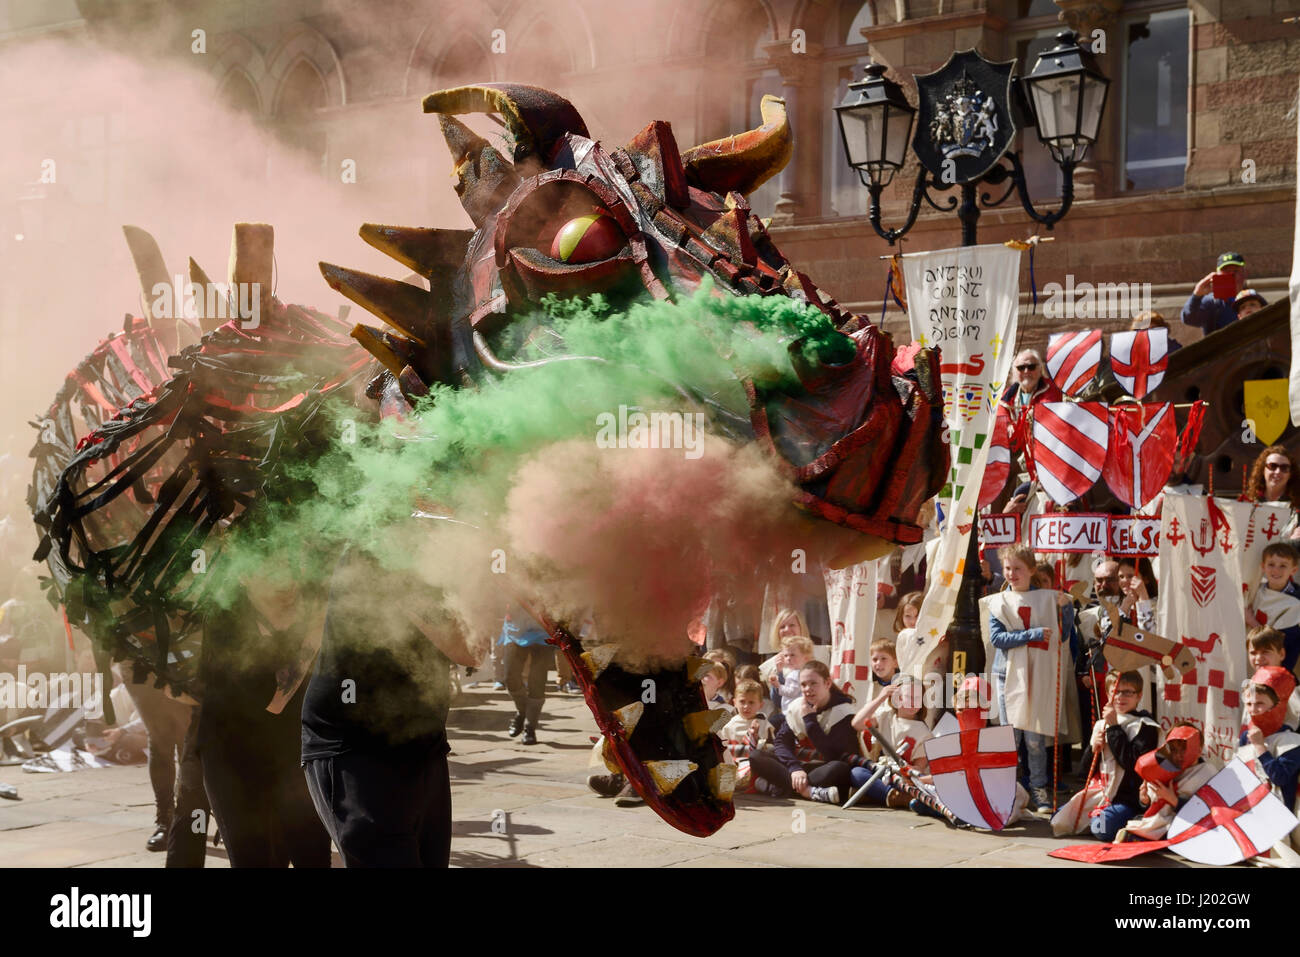 Chester, UK. 23rd April 2017. A smoke breathing dragon makes an entrance as part of the St George's day medieval - Stock-Bilder